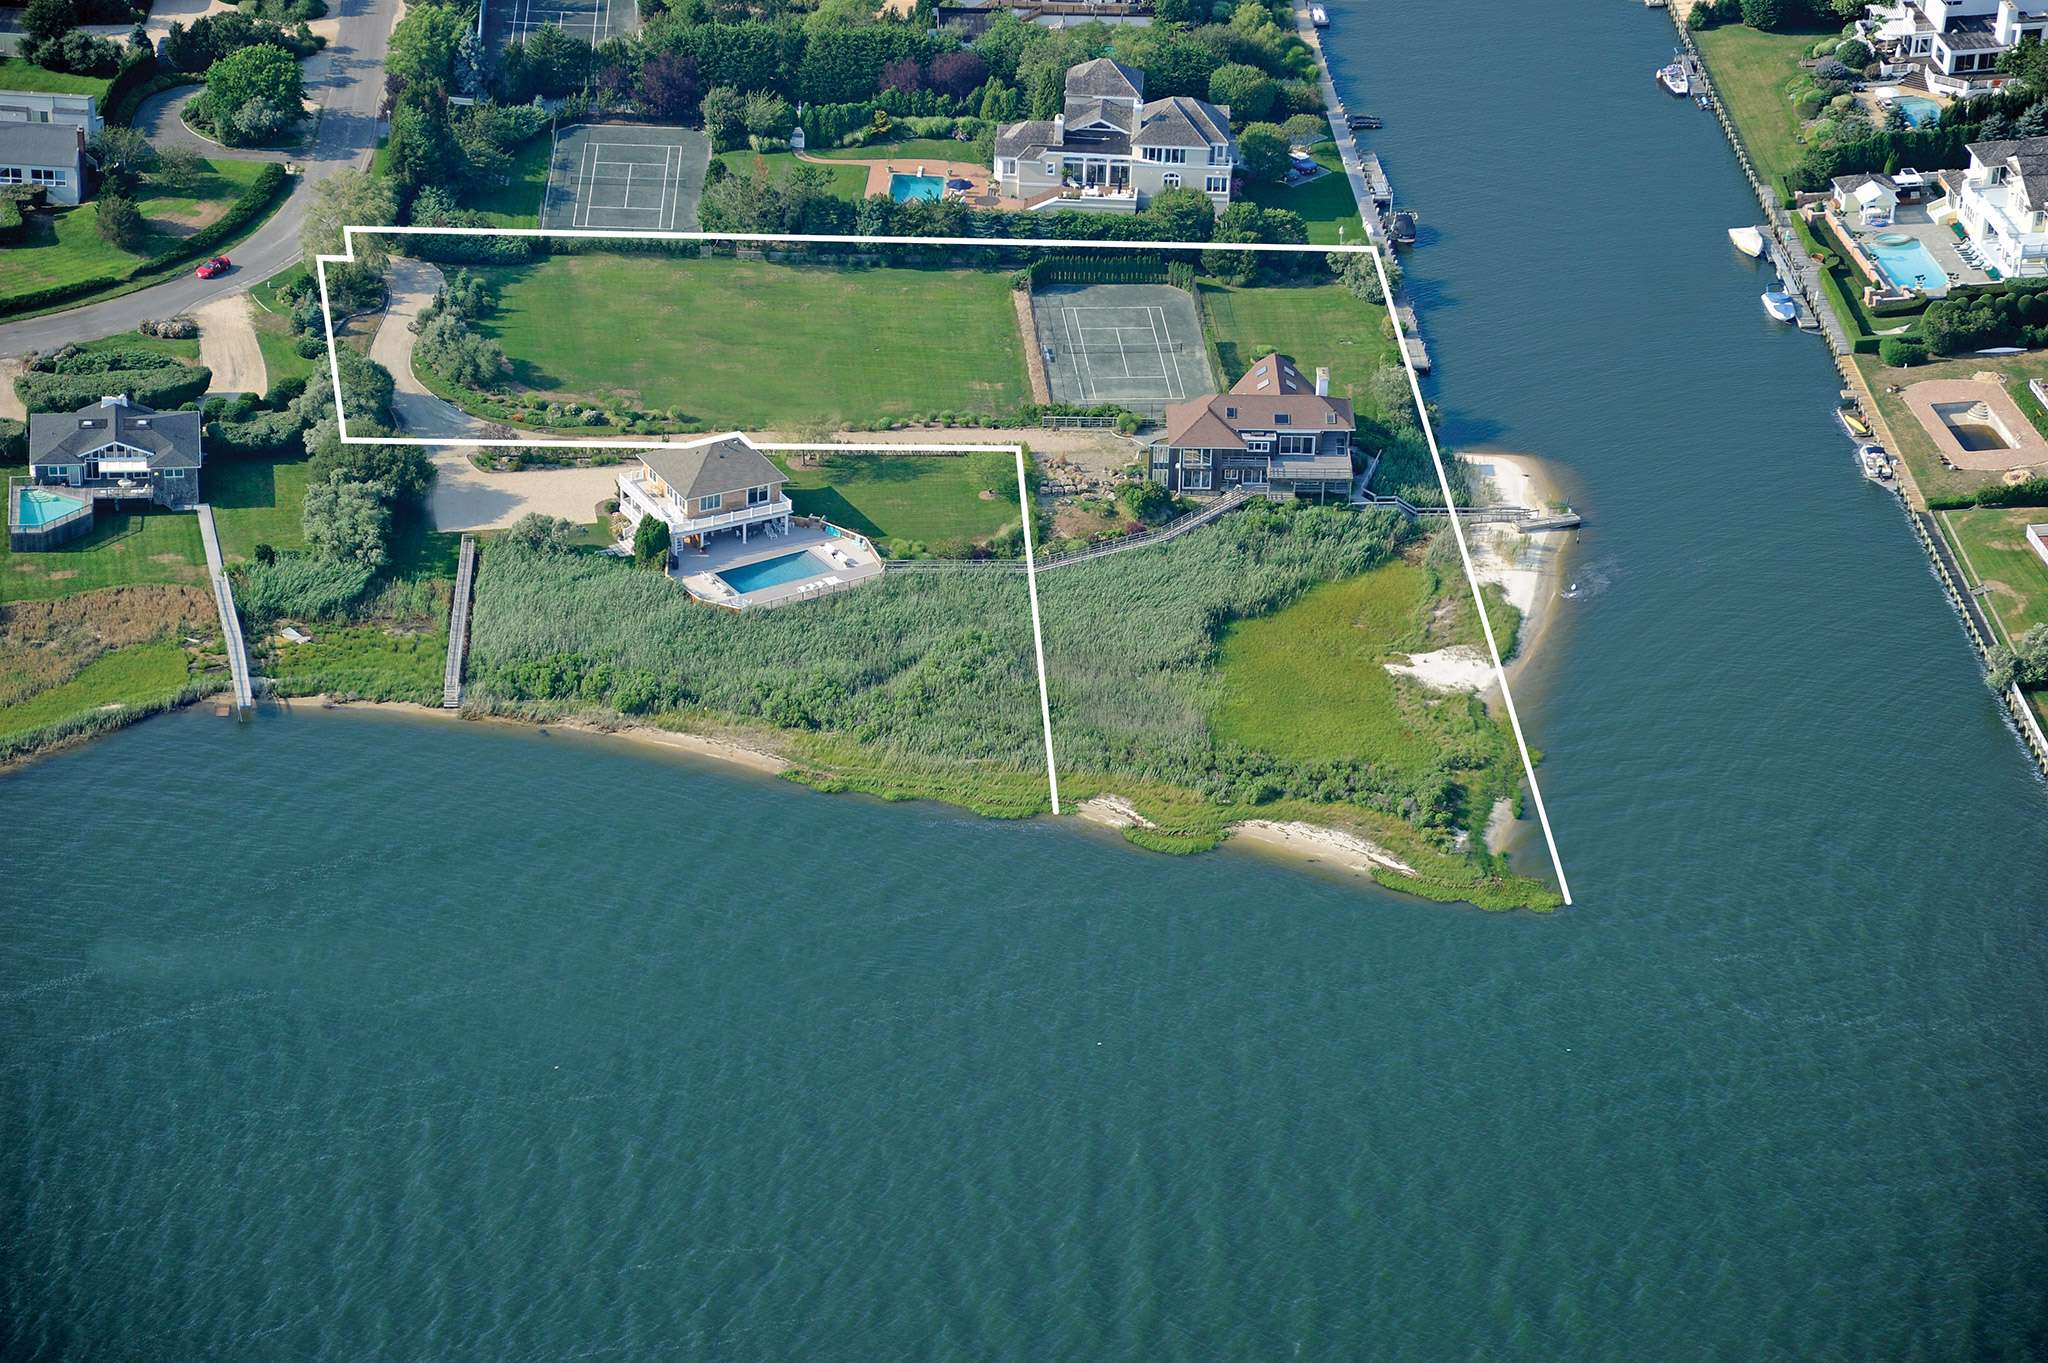 Single Family Home for Sale at Rare Waterfront Compound 26 And 30 Stacy Drive, Westhampton Beach, New York